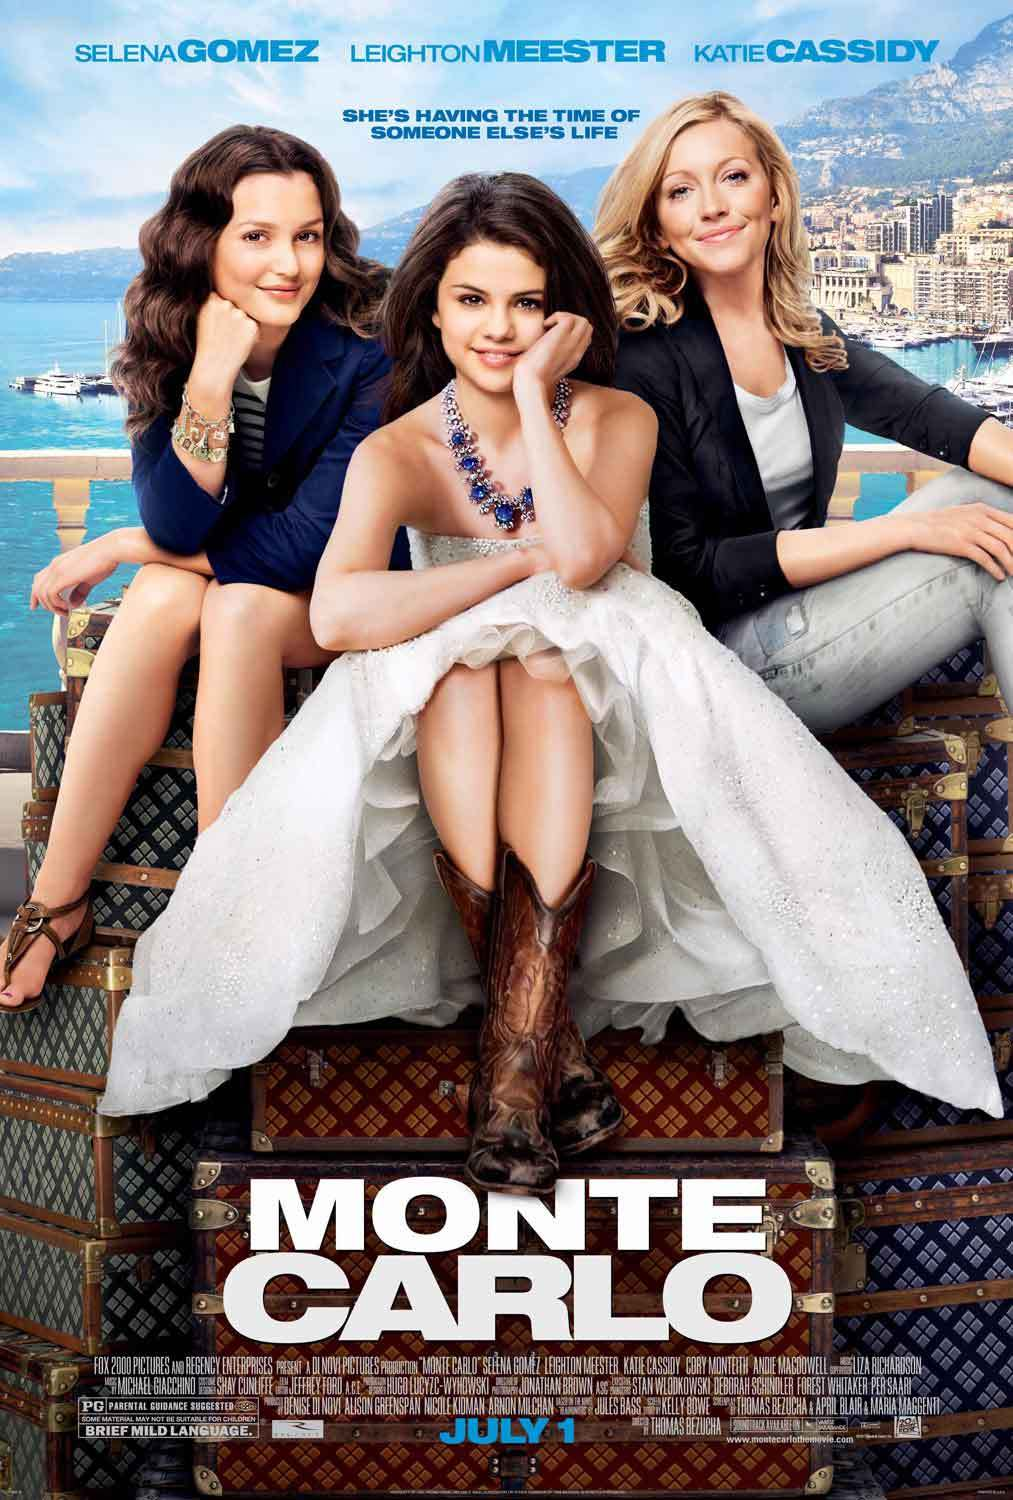 monte carlo movie in hindi download torrent